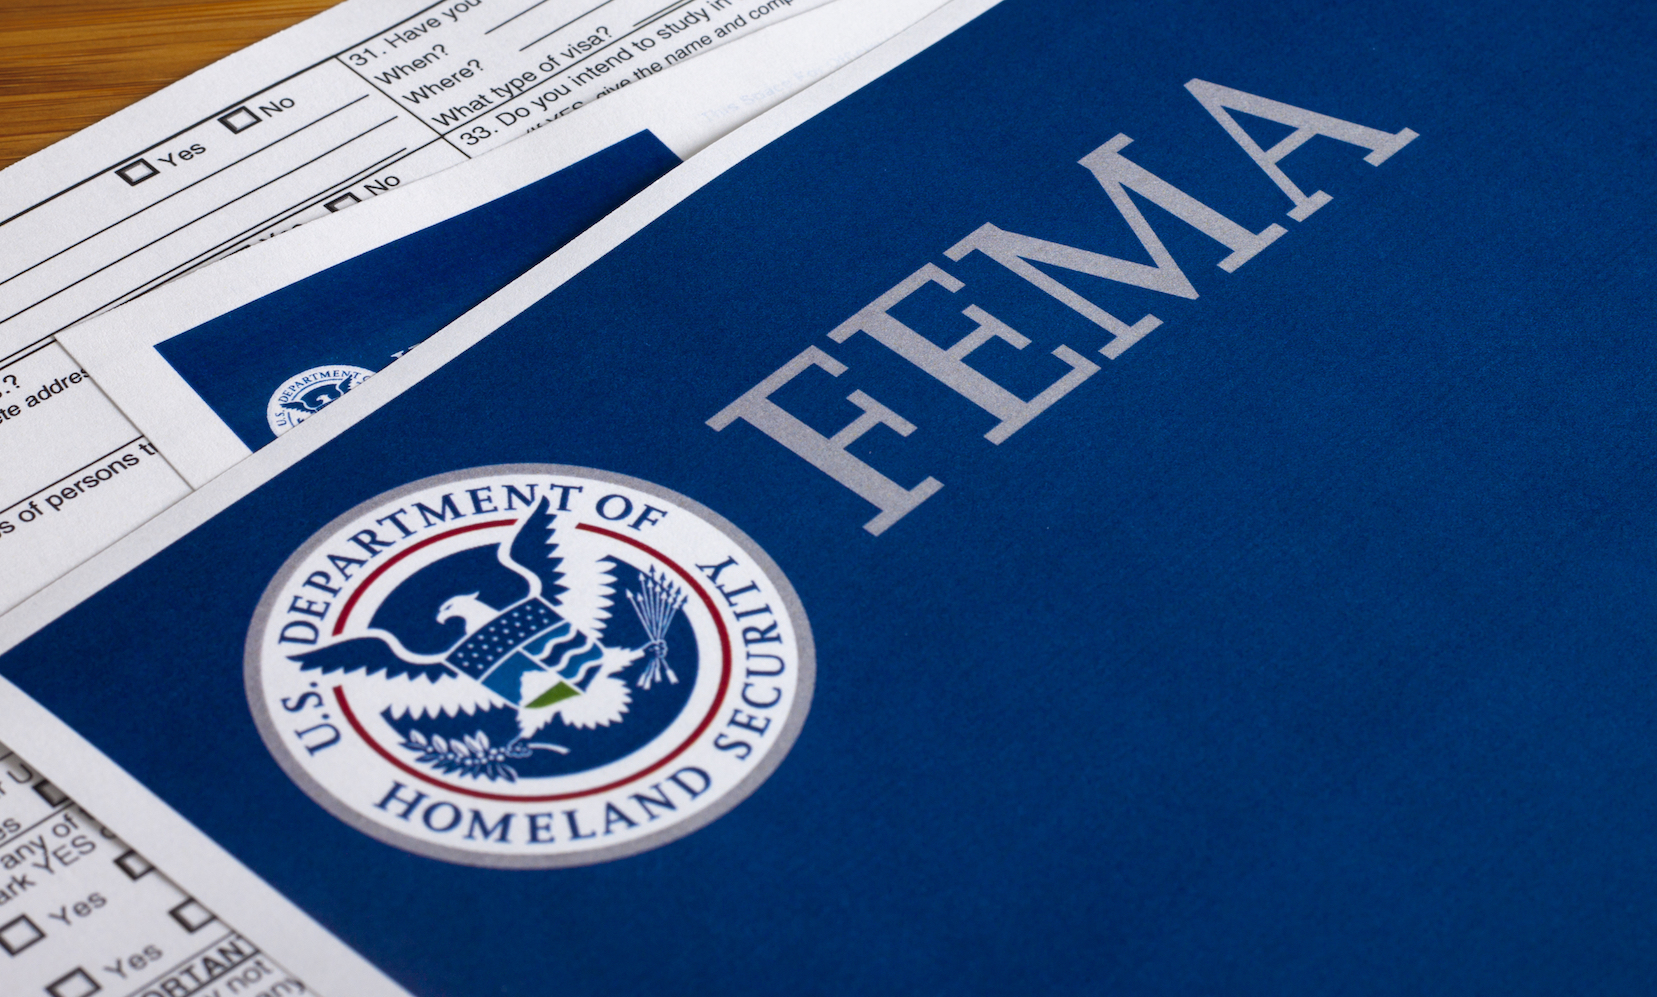 The Federal Emergency Management Agency (FEMA) released its four-year action plan on Thursday without a single mention of climate change or global warming.